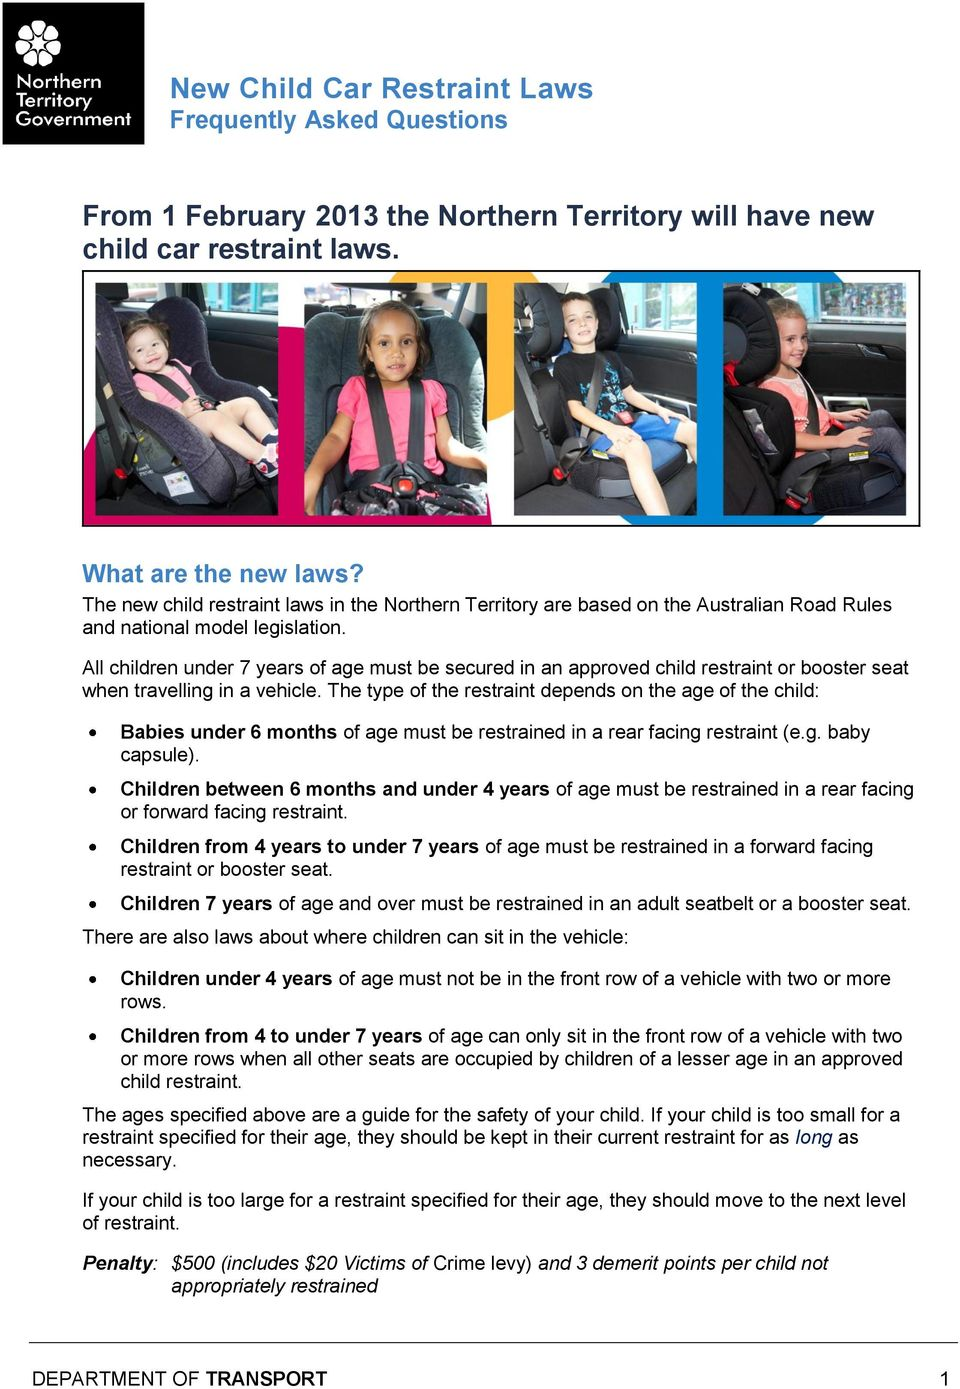 All children under 7 years of age must be secured in an approved child restraint or booster seat when travelling in a vehicle.